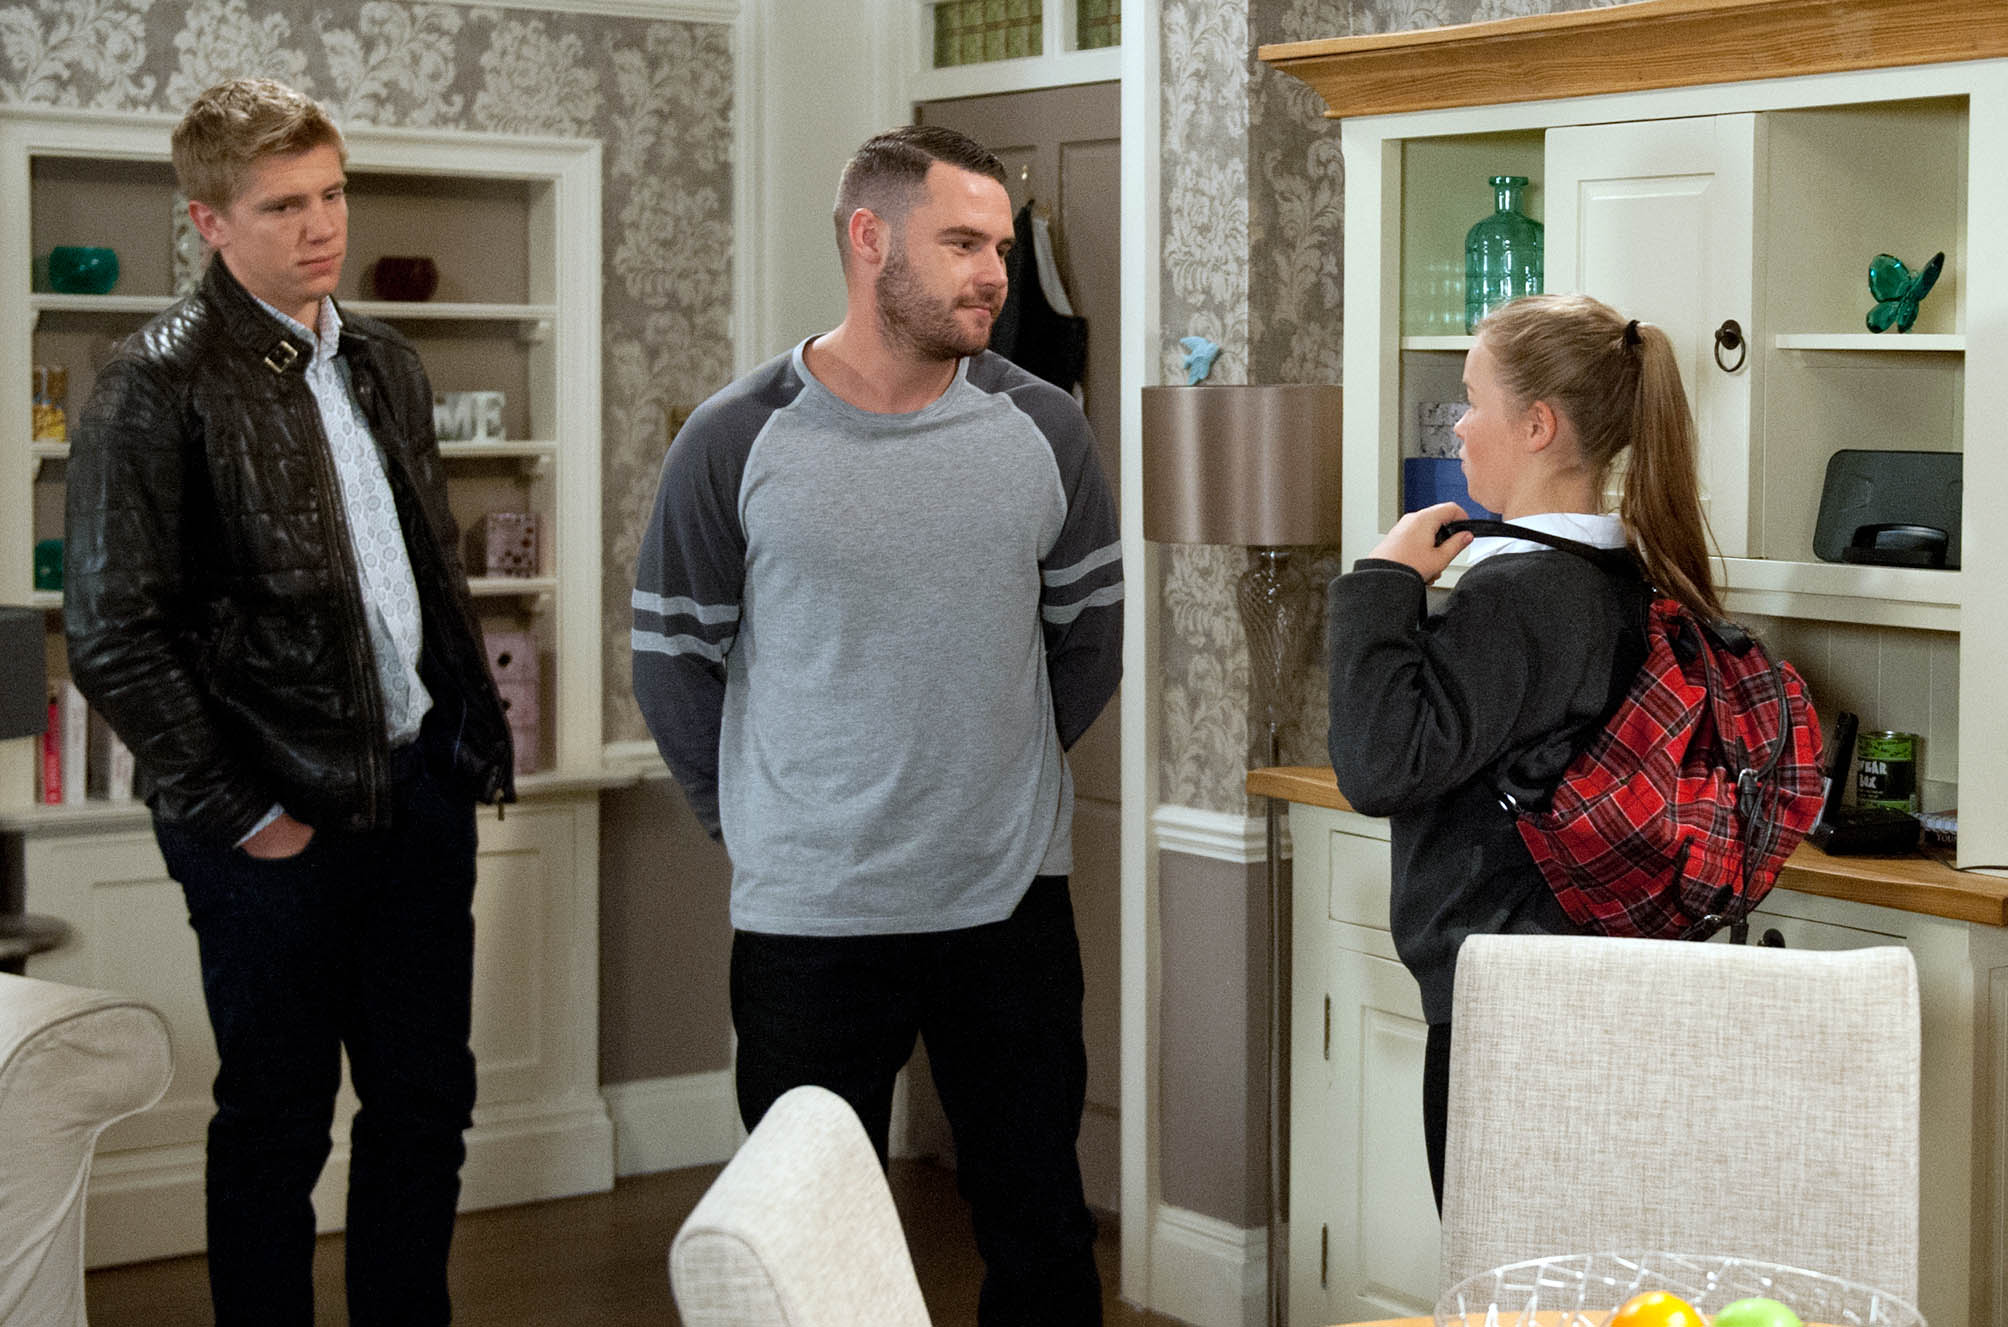 FROM ITV STRICT EMBARGO - NO USE BEFORE TUESDAY 6th SEPTEMBER 2016 Emmerdale - Ep 7614 Tuesday 13th September 2016 Liv [ISOBEL STEELE] sulks about being left with Robert Sugden [RYAN HAWLEY] and Chas Dingle [LUCY PARGETTER] as Aaron Dingle [DANNY MILLER] leaves for France. Picture contact: david.crook@itv.com on 0161 952 6214 Photographer - Amy Brammall This photograph is (C) ITV Plc and can only be reproduced for editorial purposes directly in connection with the programme or event mentioned above, or ITV plc. Once made available by ITV plc Picture Desk, this photograph can be reproduced once only up until the transmission [TX] date and no reproduction fee will be charged. Any subsequent usage may incur a fee. This photograph must not be manipulated [excluding basic cropping] in a manner which alters the visual appearance of the person photographed deemed detrimental or inappropriate by ITV plc Picture Desk. This photograph must not be syndicated to any other company, publication or website, or permanently archived, without the express written permission of ITV Plc Picture Desk. Full Terms and conditions are available on the website www.itvpictures.com